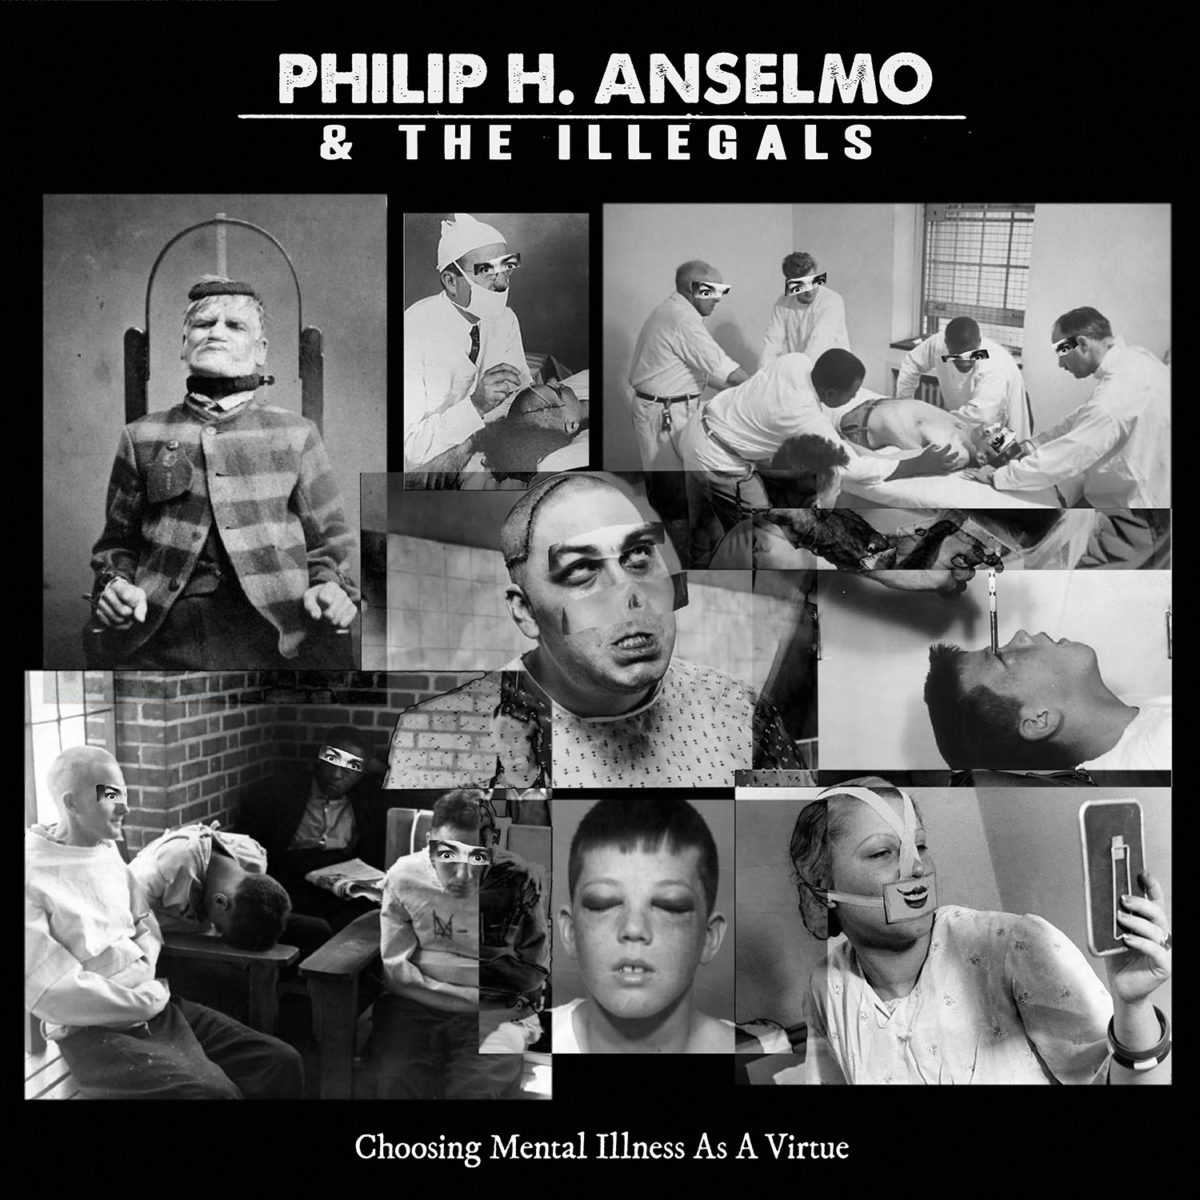 Phil Anselmo & The Illegals - Choosing Mental Illness As A Virtue - Album Cover